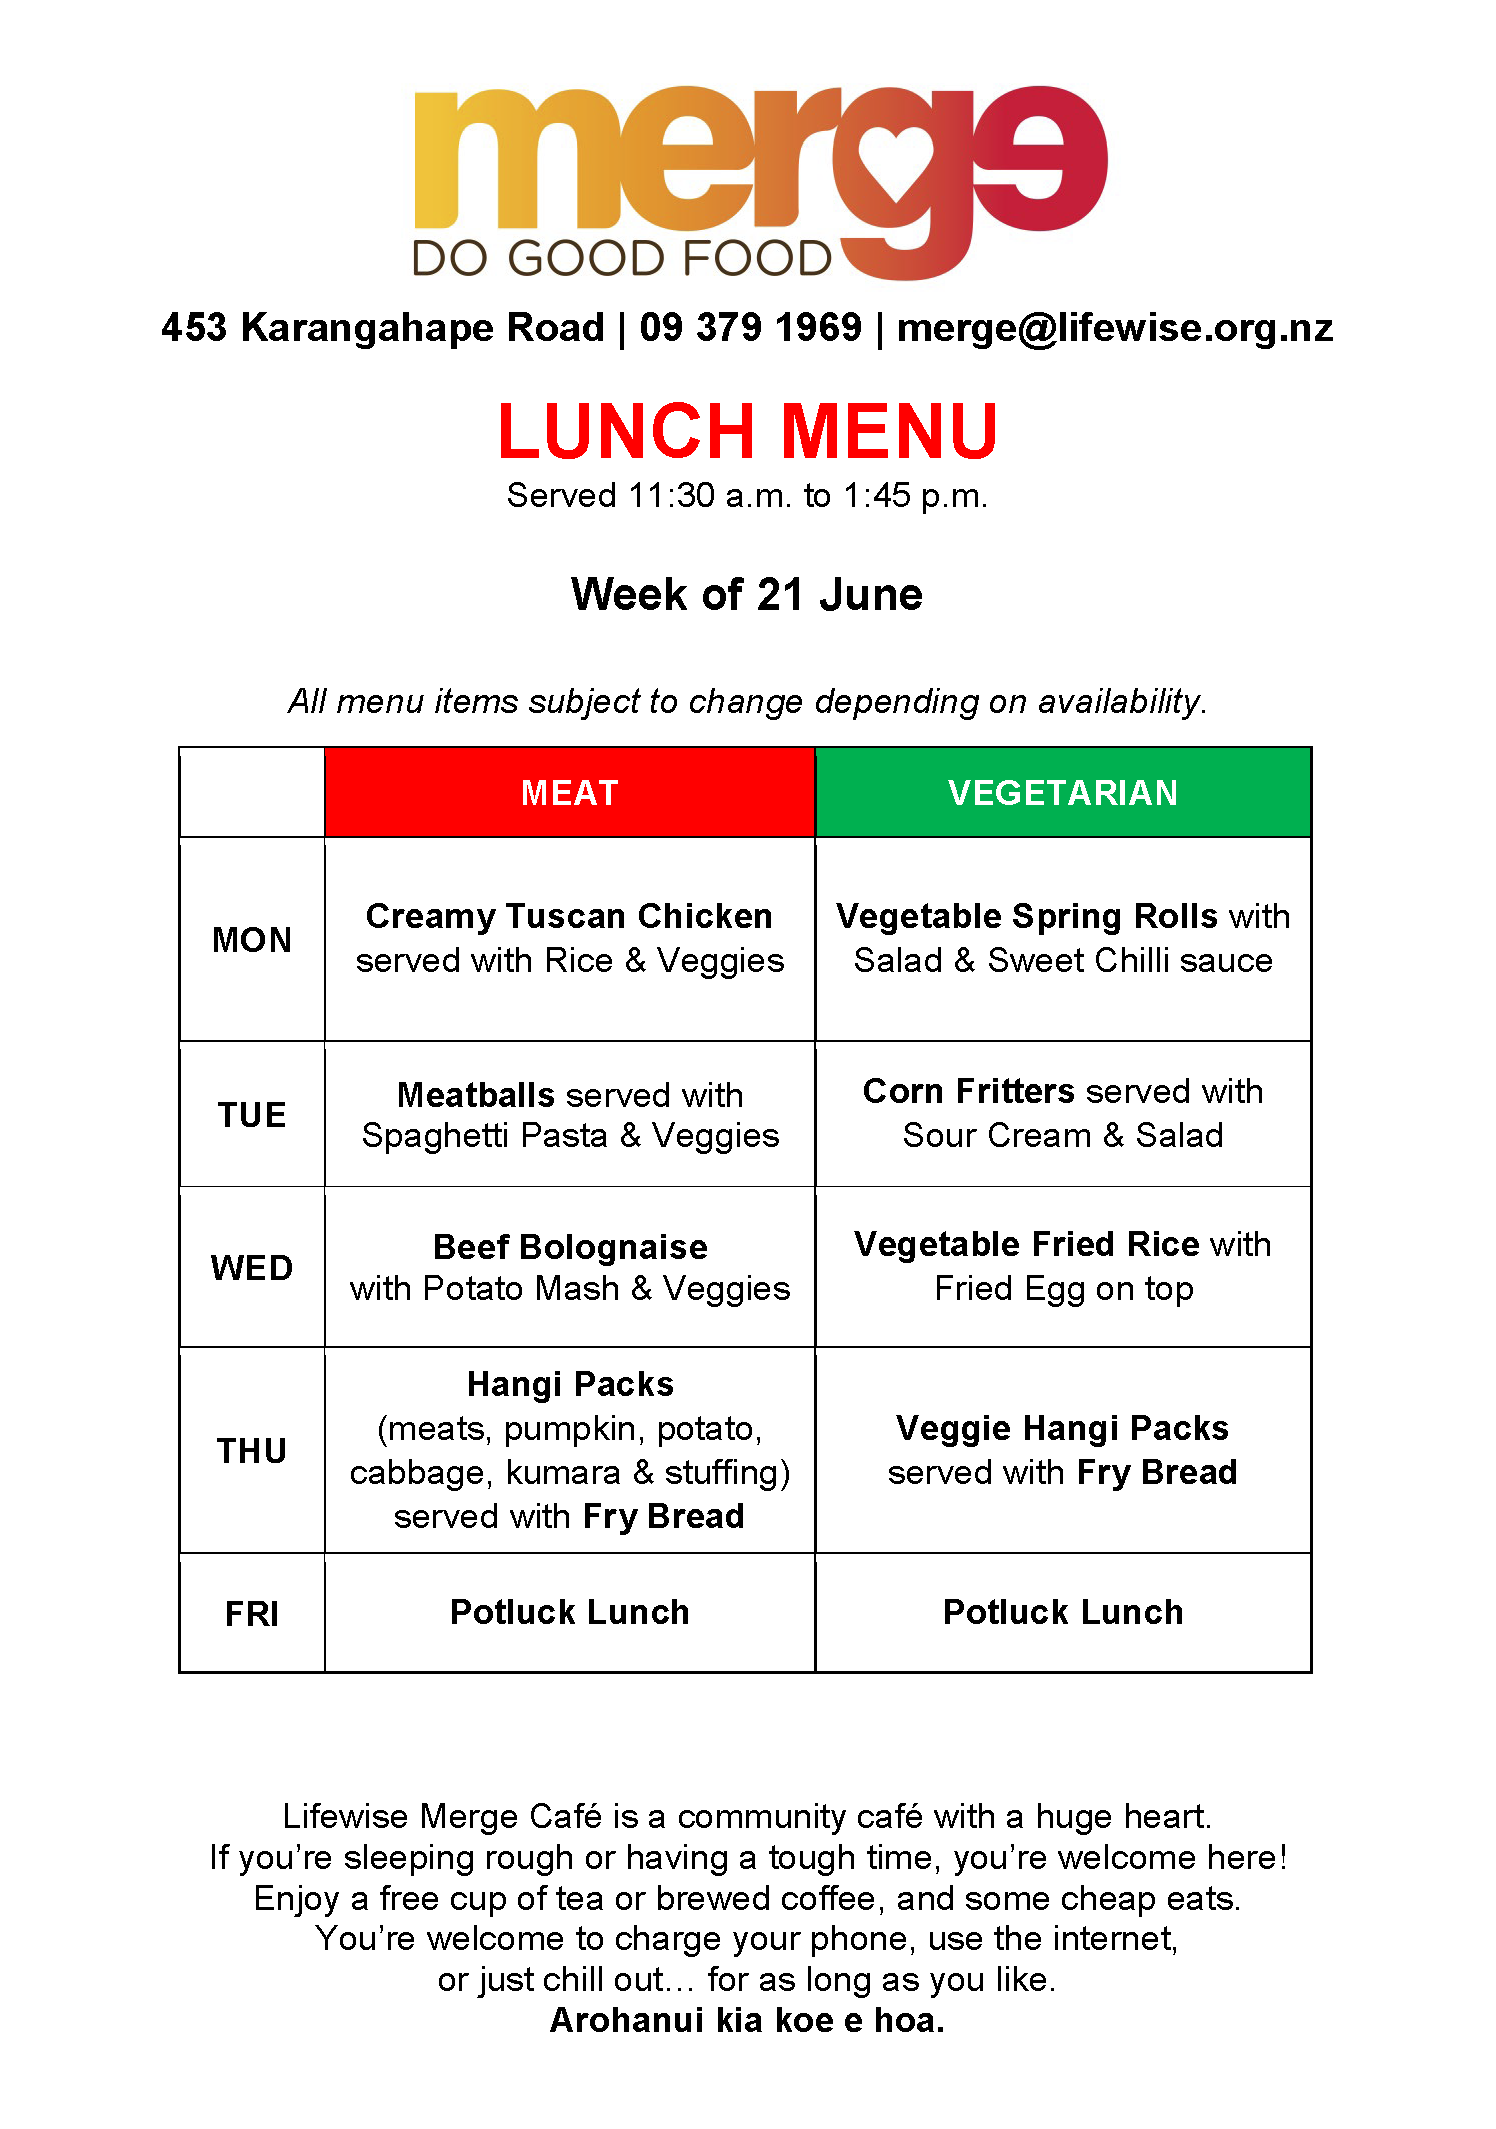 List of Merge Cafe lunch menu items. Lunch at Merge Cafe is served from 11:30 am to 1:45 pm every weekday. Merge Cafe is on 453 Karangahape Road, Auckland 1010